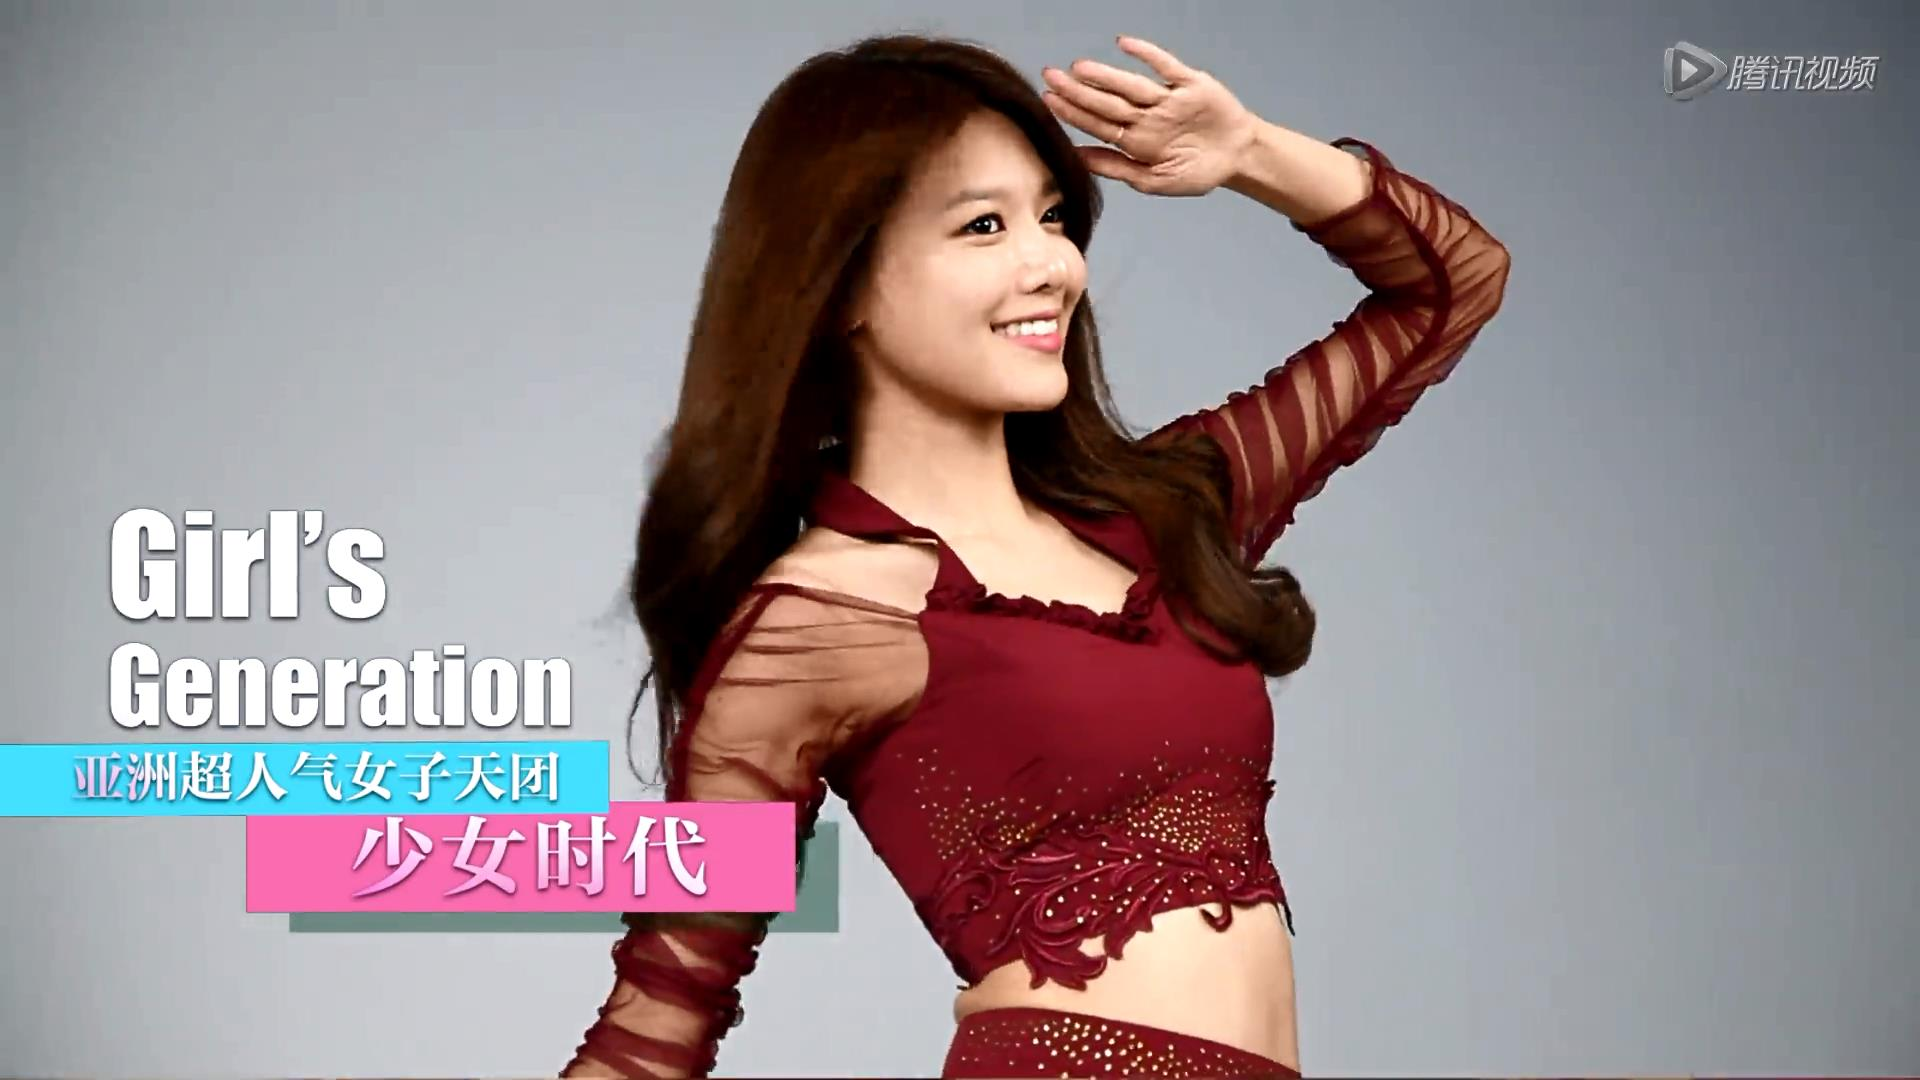 sooyoung sword of hope